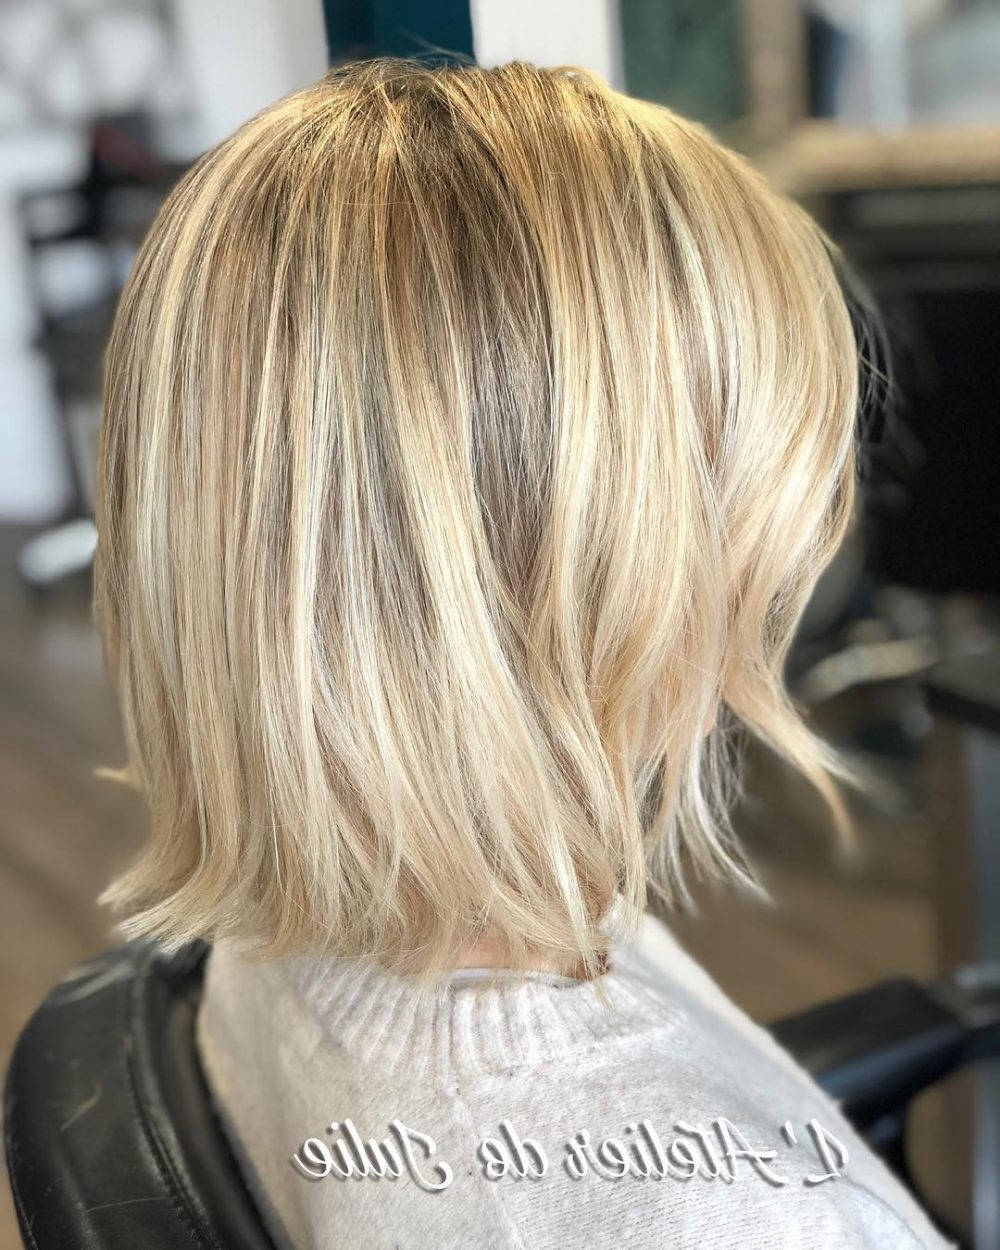 34 Perfect Short Haircuts And Hairstyles For Thin Hair (2018) With Regard To Short Hairstyles For Fine Thin Straight Hair (View 11 of 25)